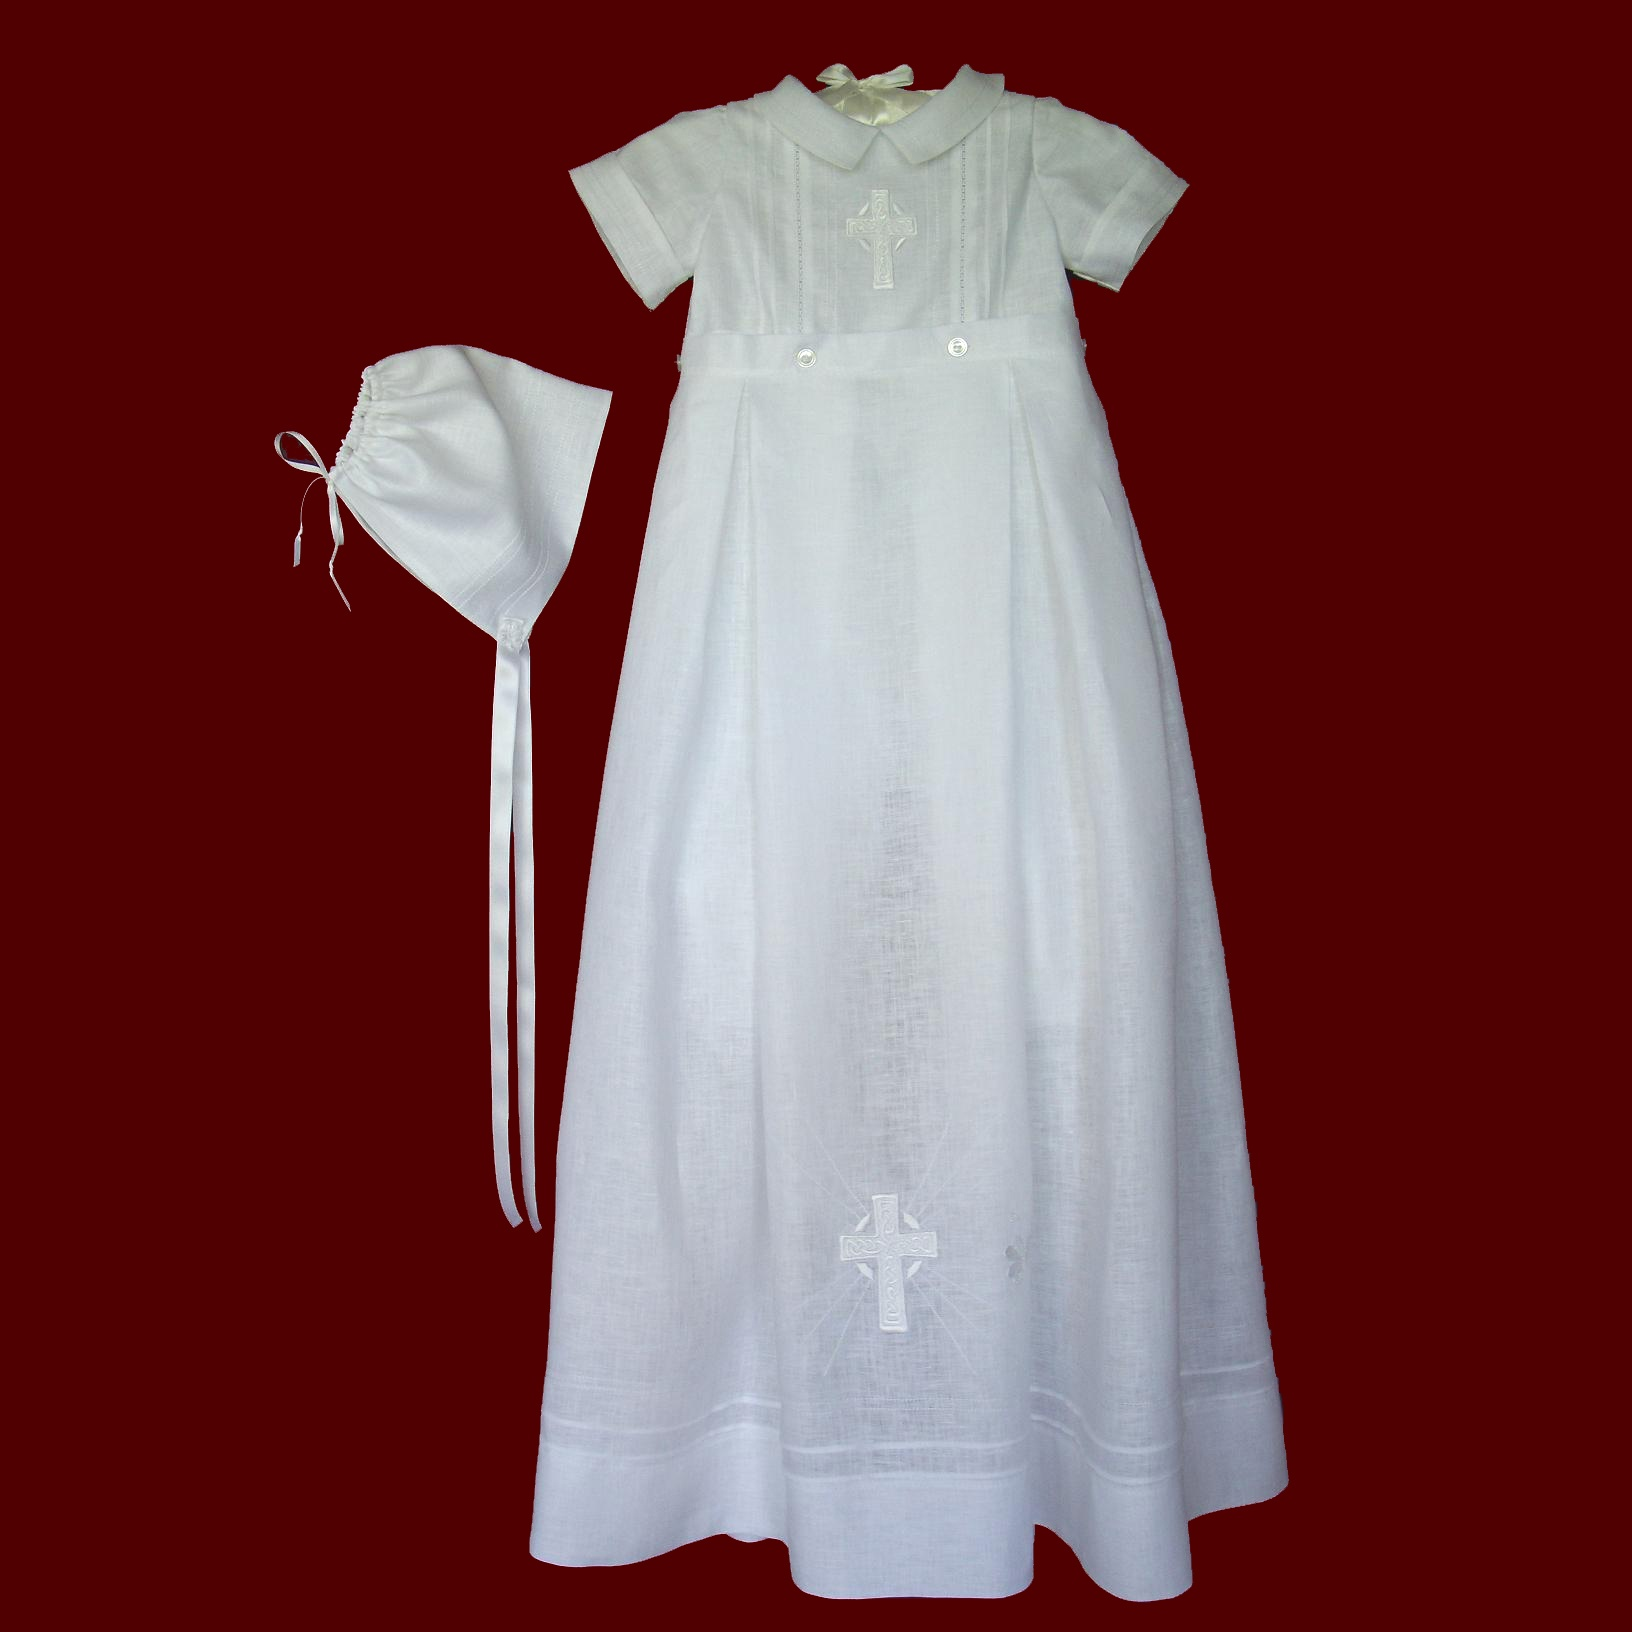 645a89396 Boys Irish Linen Christening Gown With Celtic Cross & Hat - Irish ...